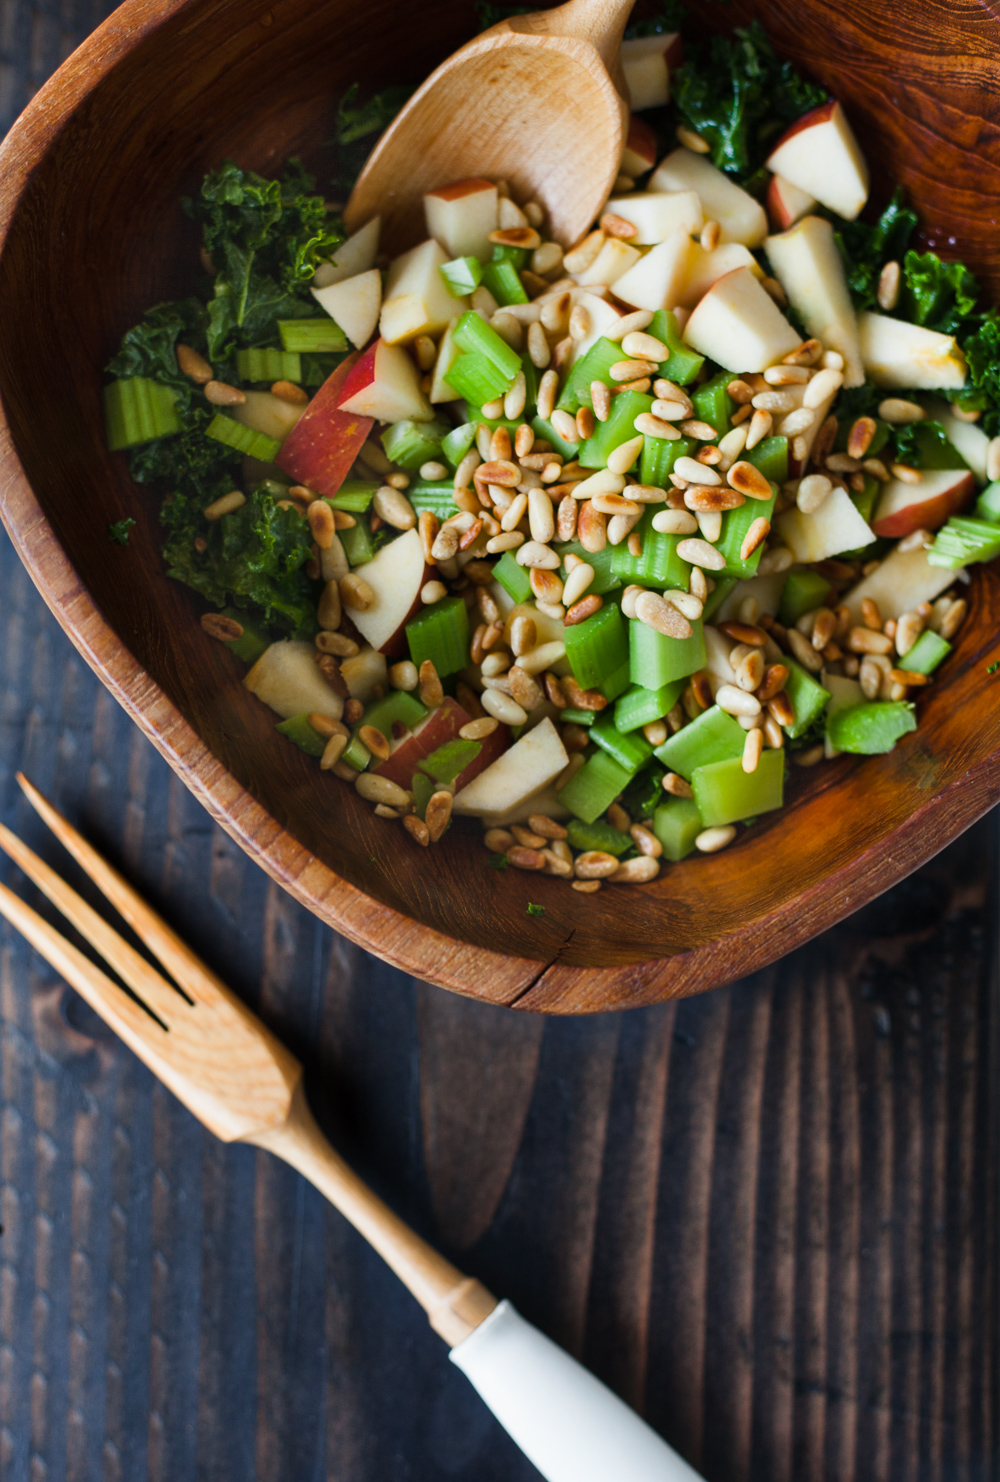 Kale apple and celery salad